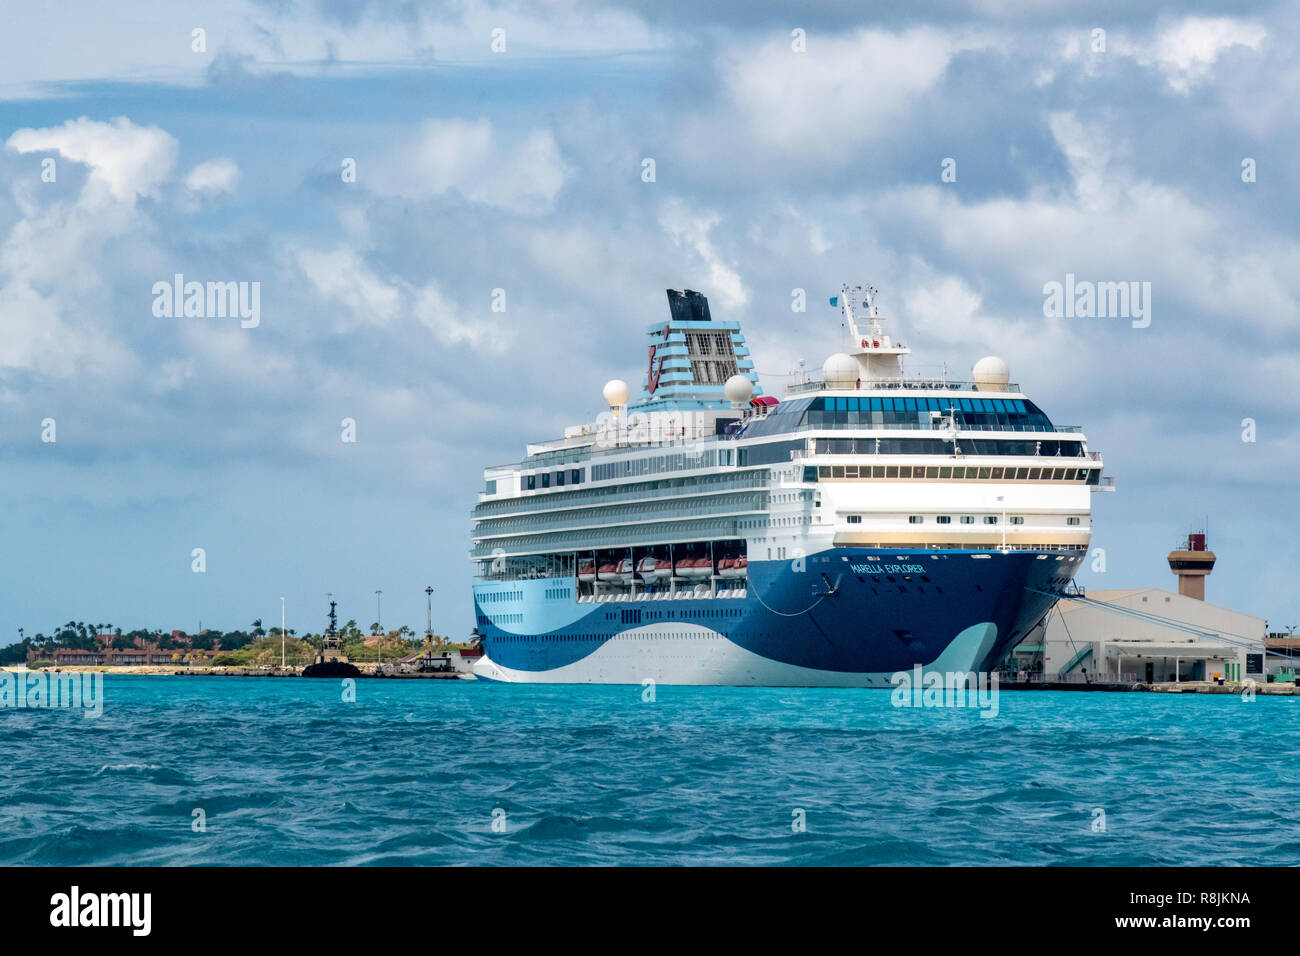 Cruise ship in Caribbean island of Aruba - cruise port with two docked cruise ships in the port of Oranjestad wait for cruise vacation passengers - Stock Image